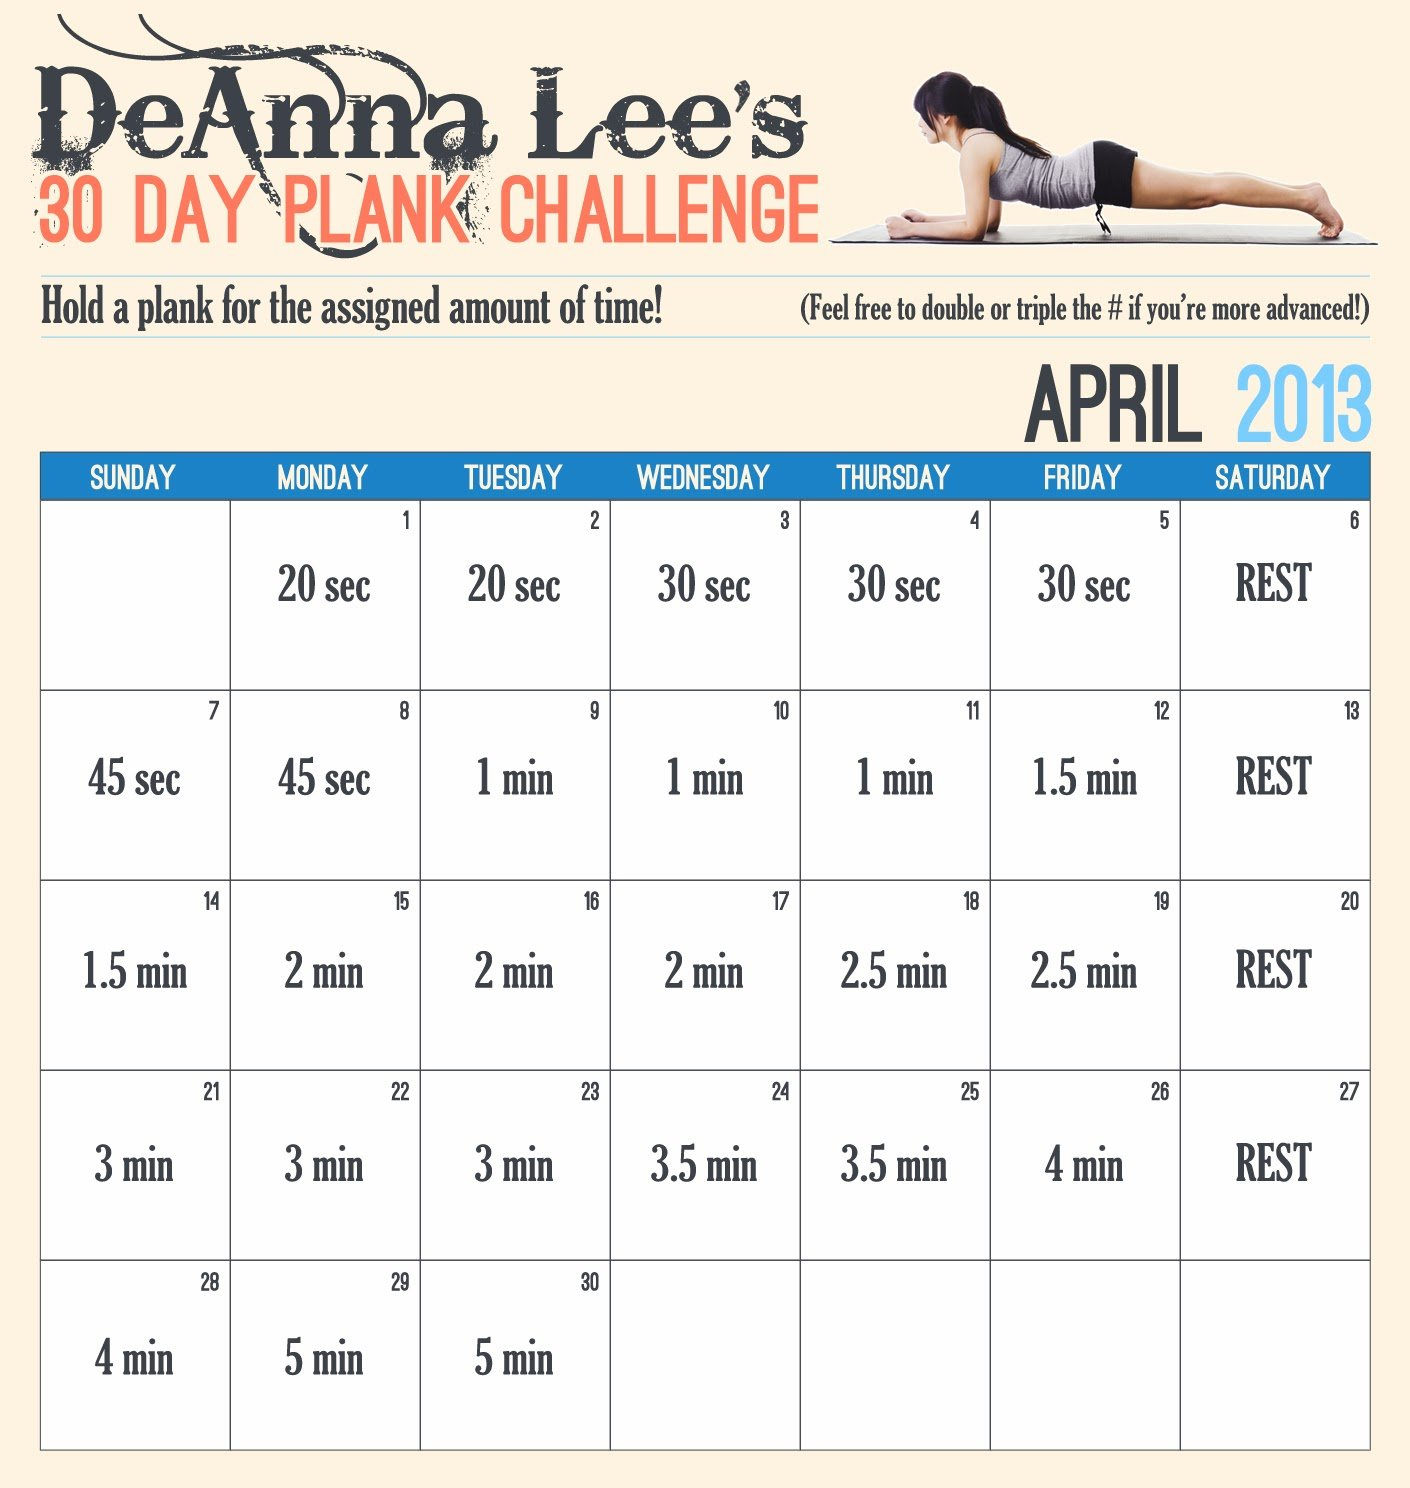 Change A Habit In 30 Days? - Challenge Accepted!  Walking Plank Challenge 30 Day Chart